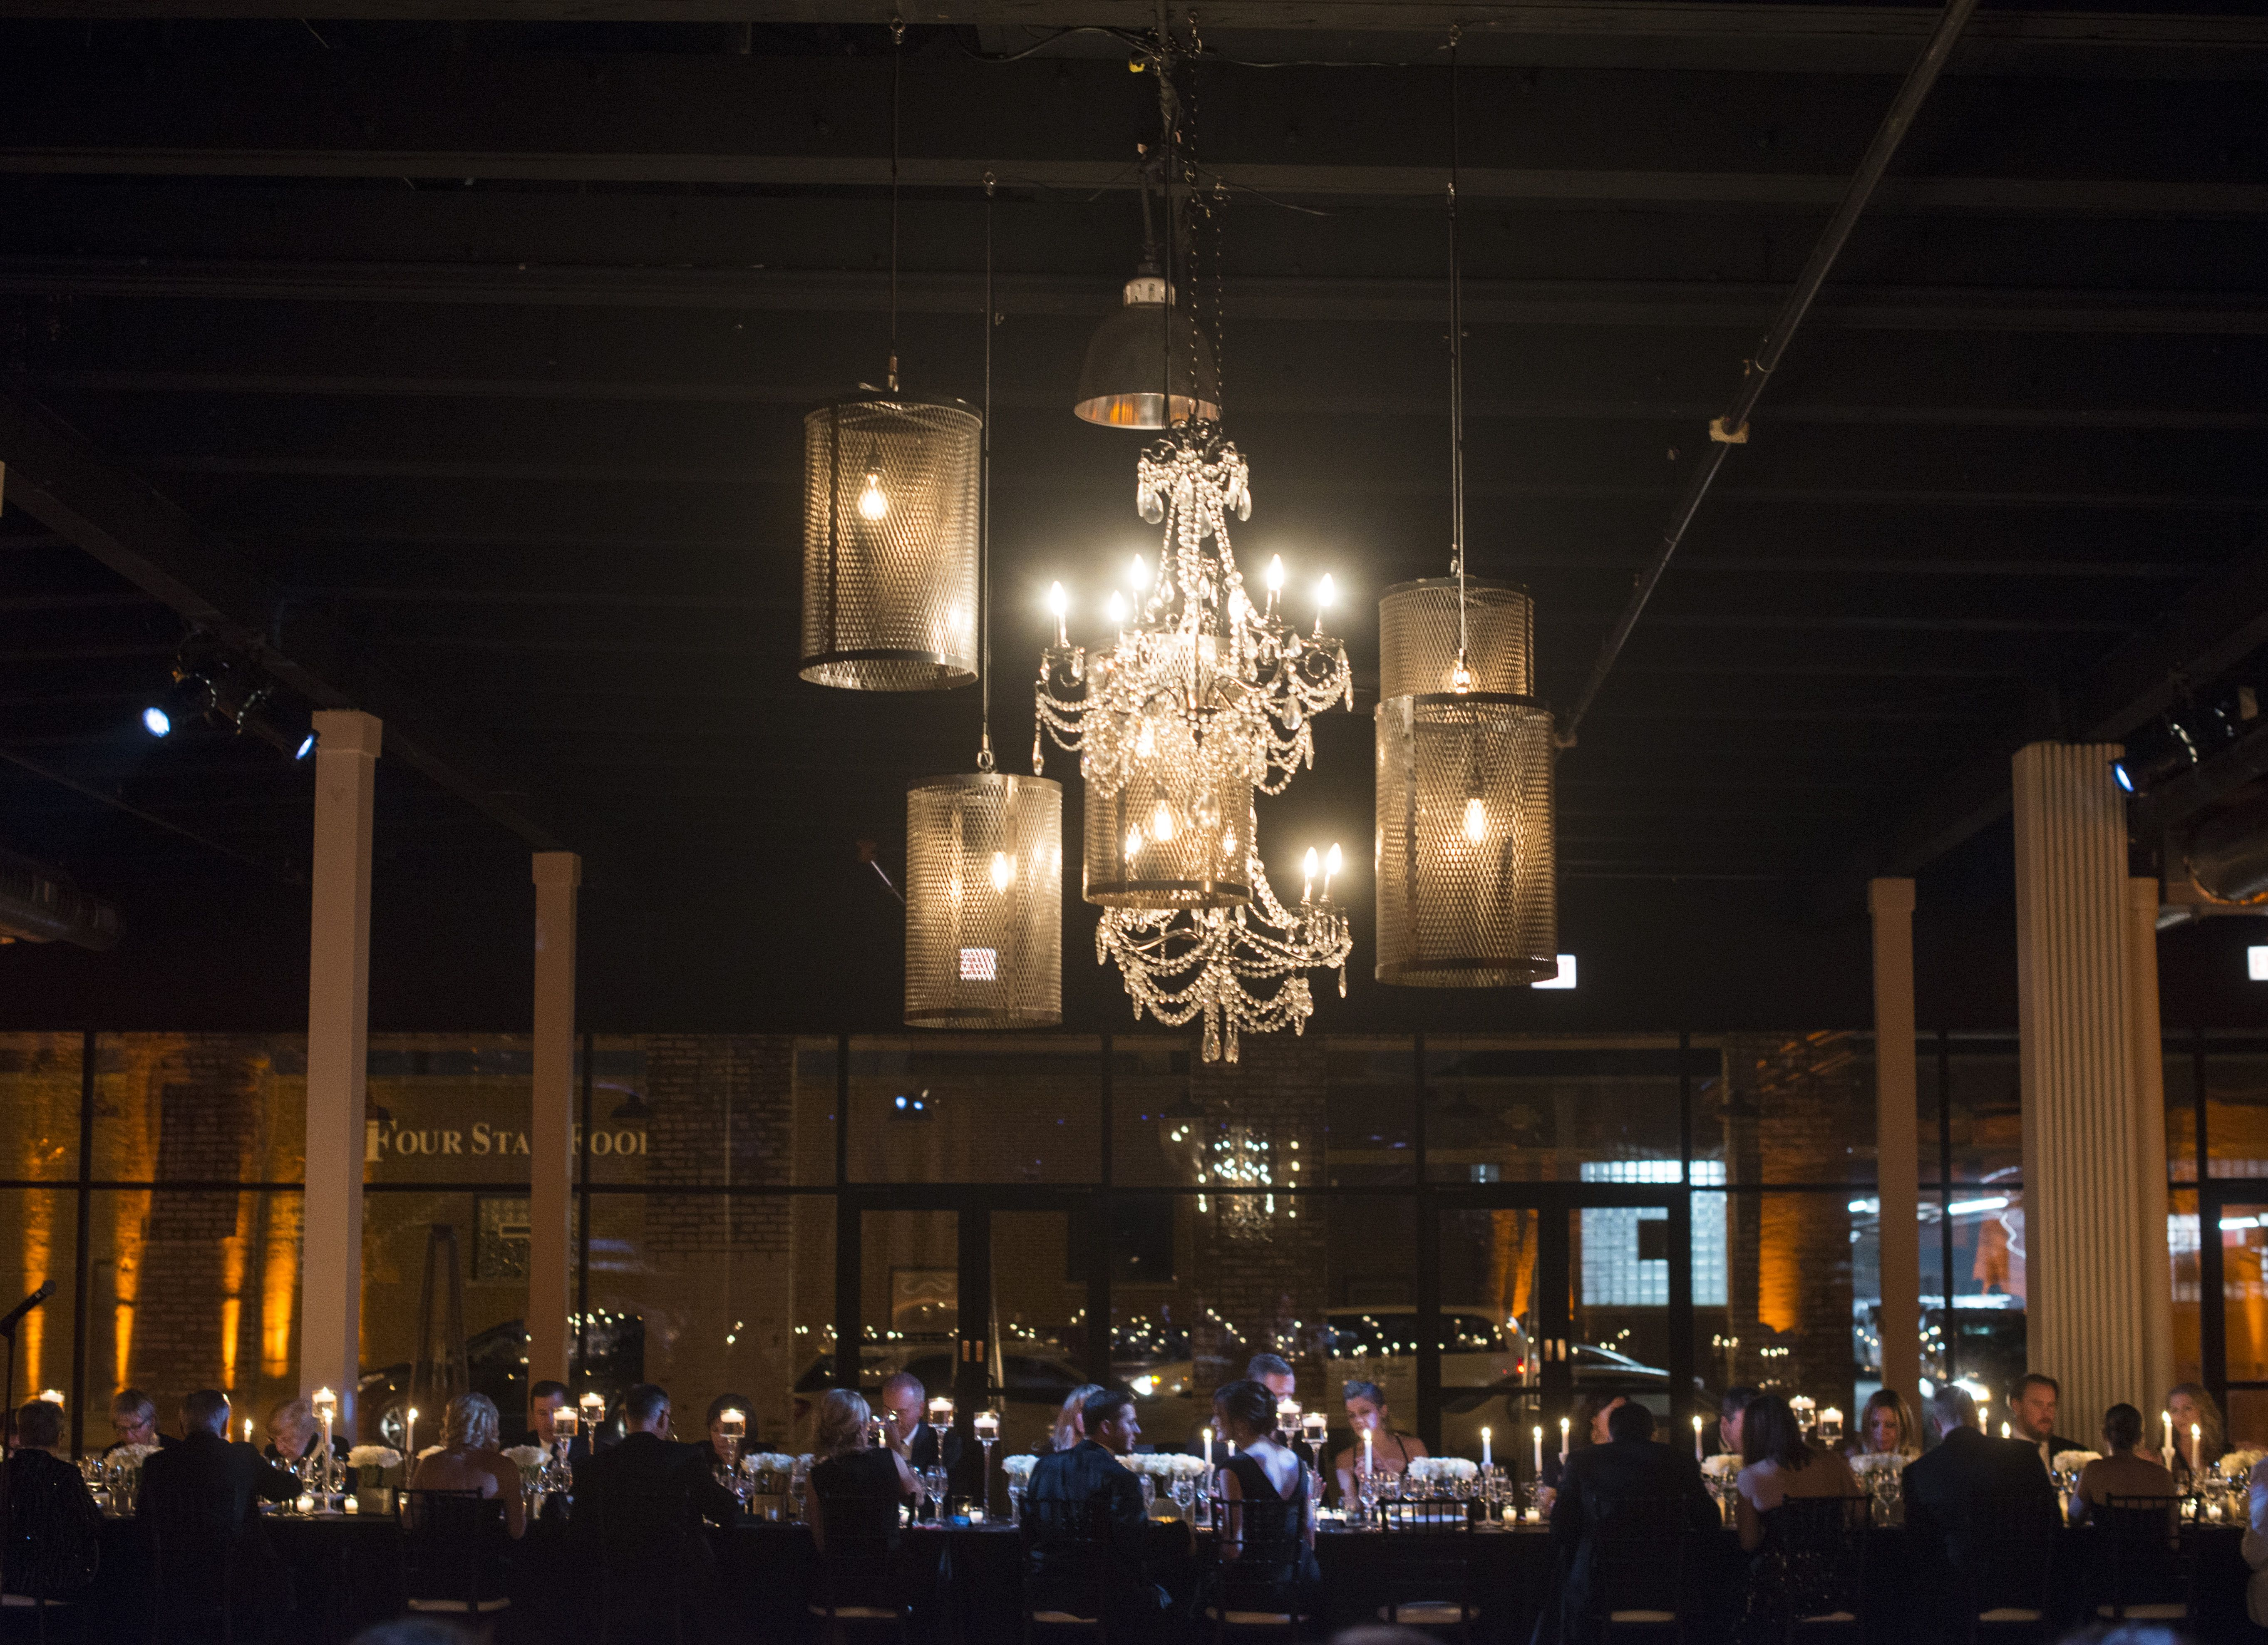 These chandeliers are amazing! Photo by Erika Dufour.